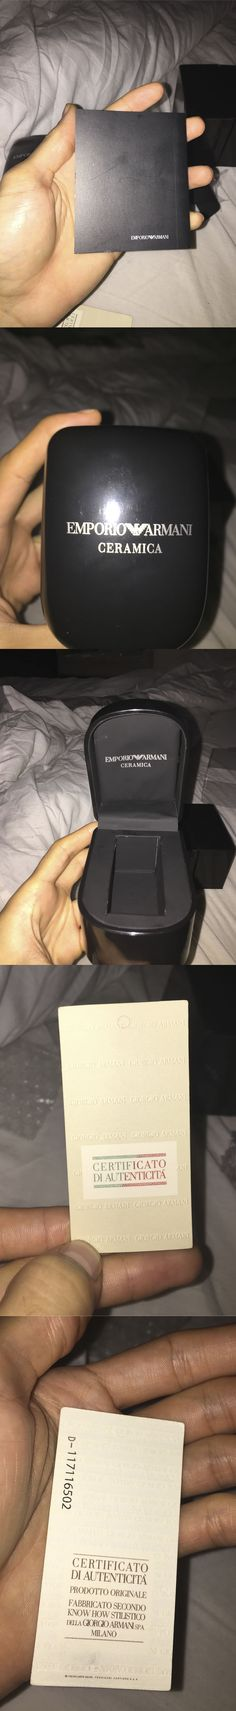 How to spot a fake Emporio Armani EA watches